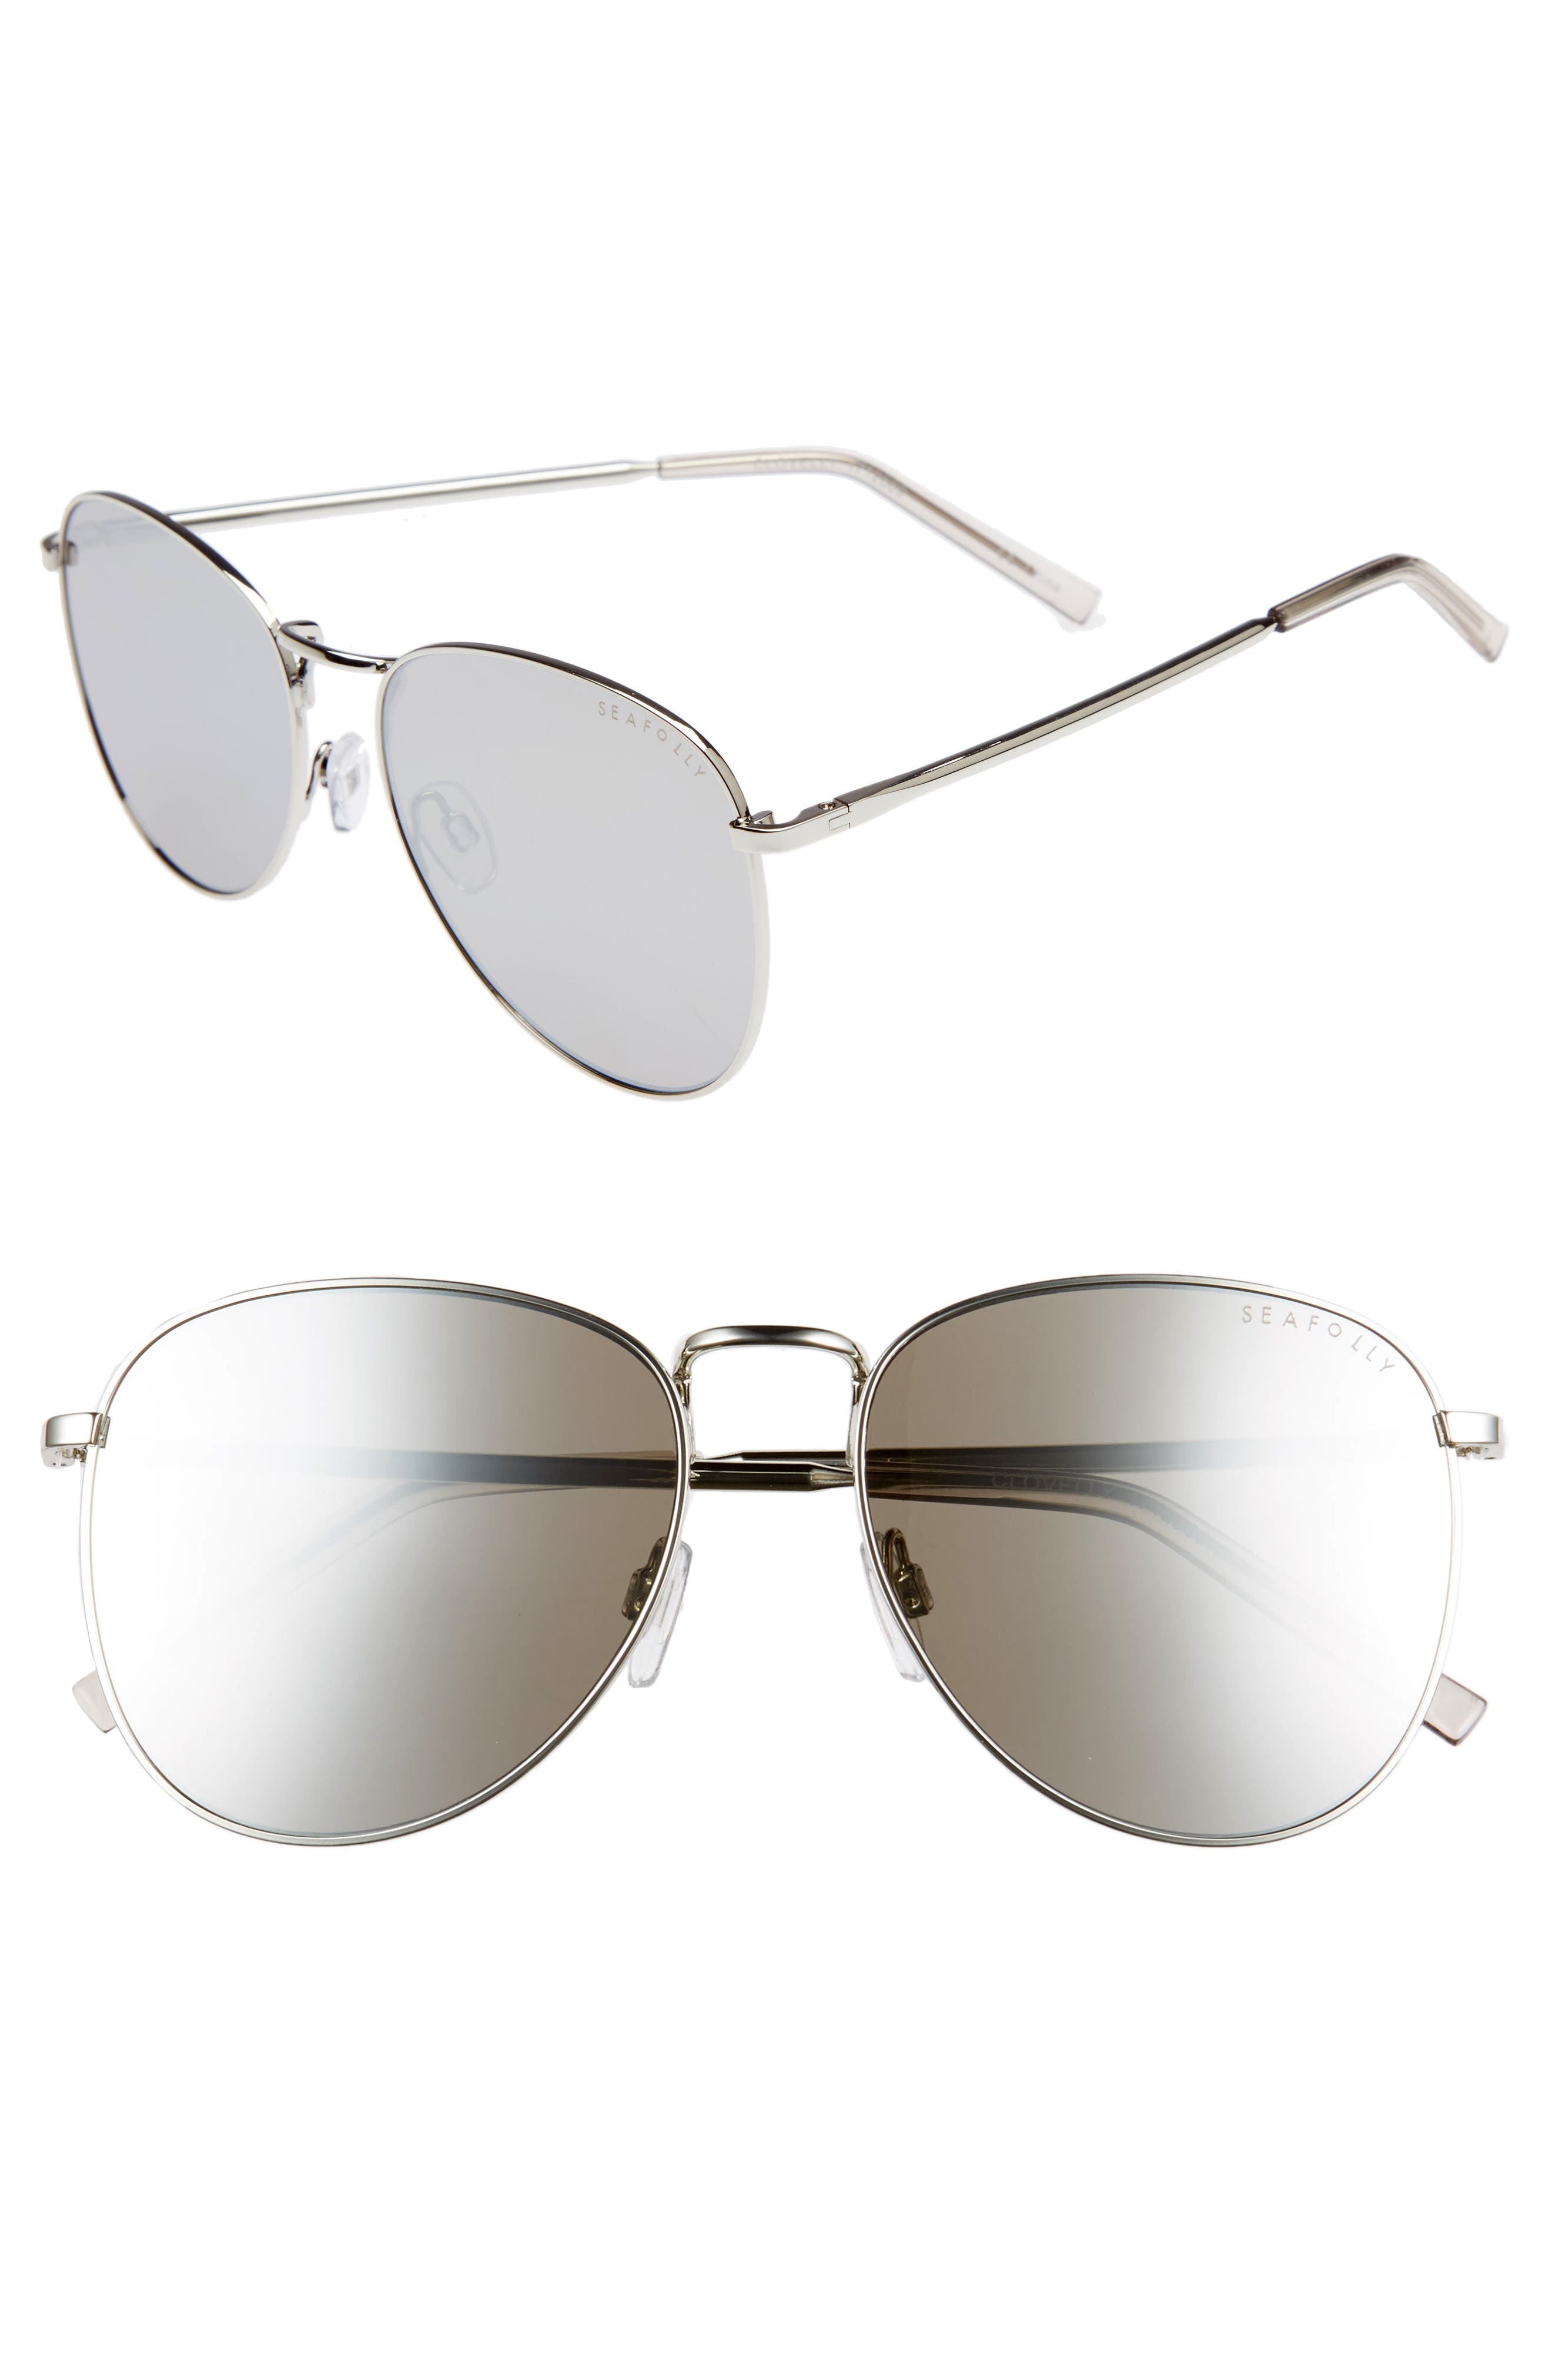 Clovelly 56mm Metal Sunglasses,                         Main,                         color, Sand